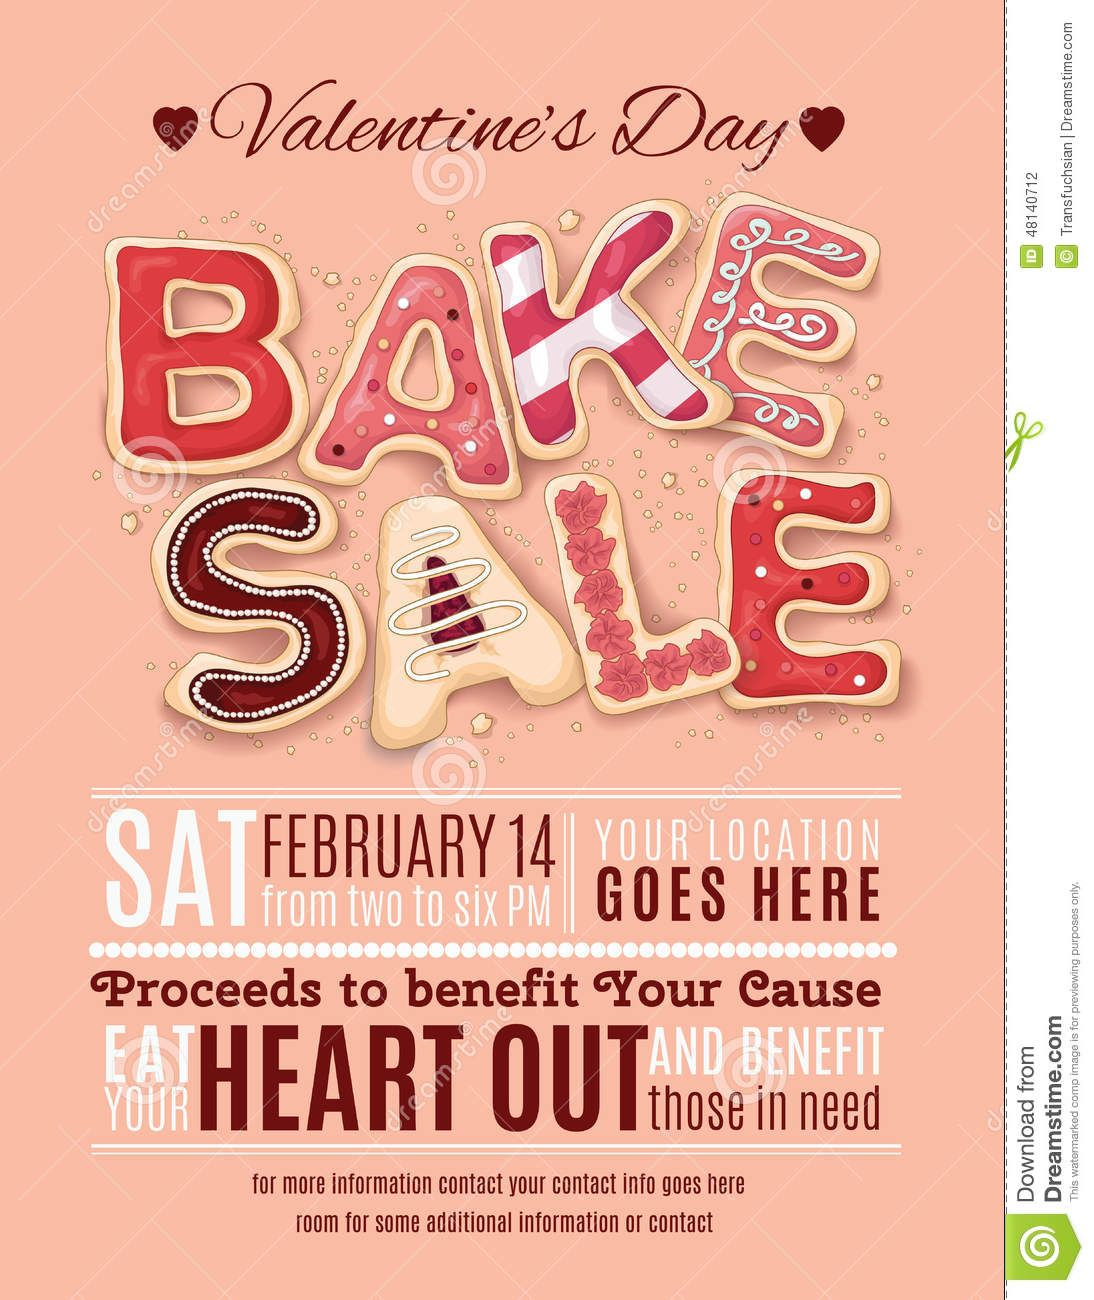 Hand Drawn Decorated Cookies That Say Bake Sale For A Valentineu0027s Day  Promotion On A Flyer, Brochure, Poster Template Layout   Buy This Stock  Vector On ...  For Sale Poster Template